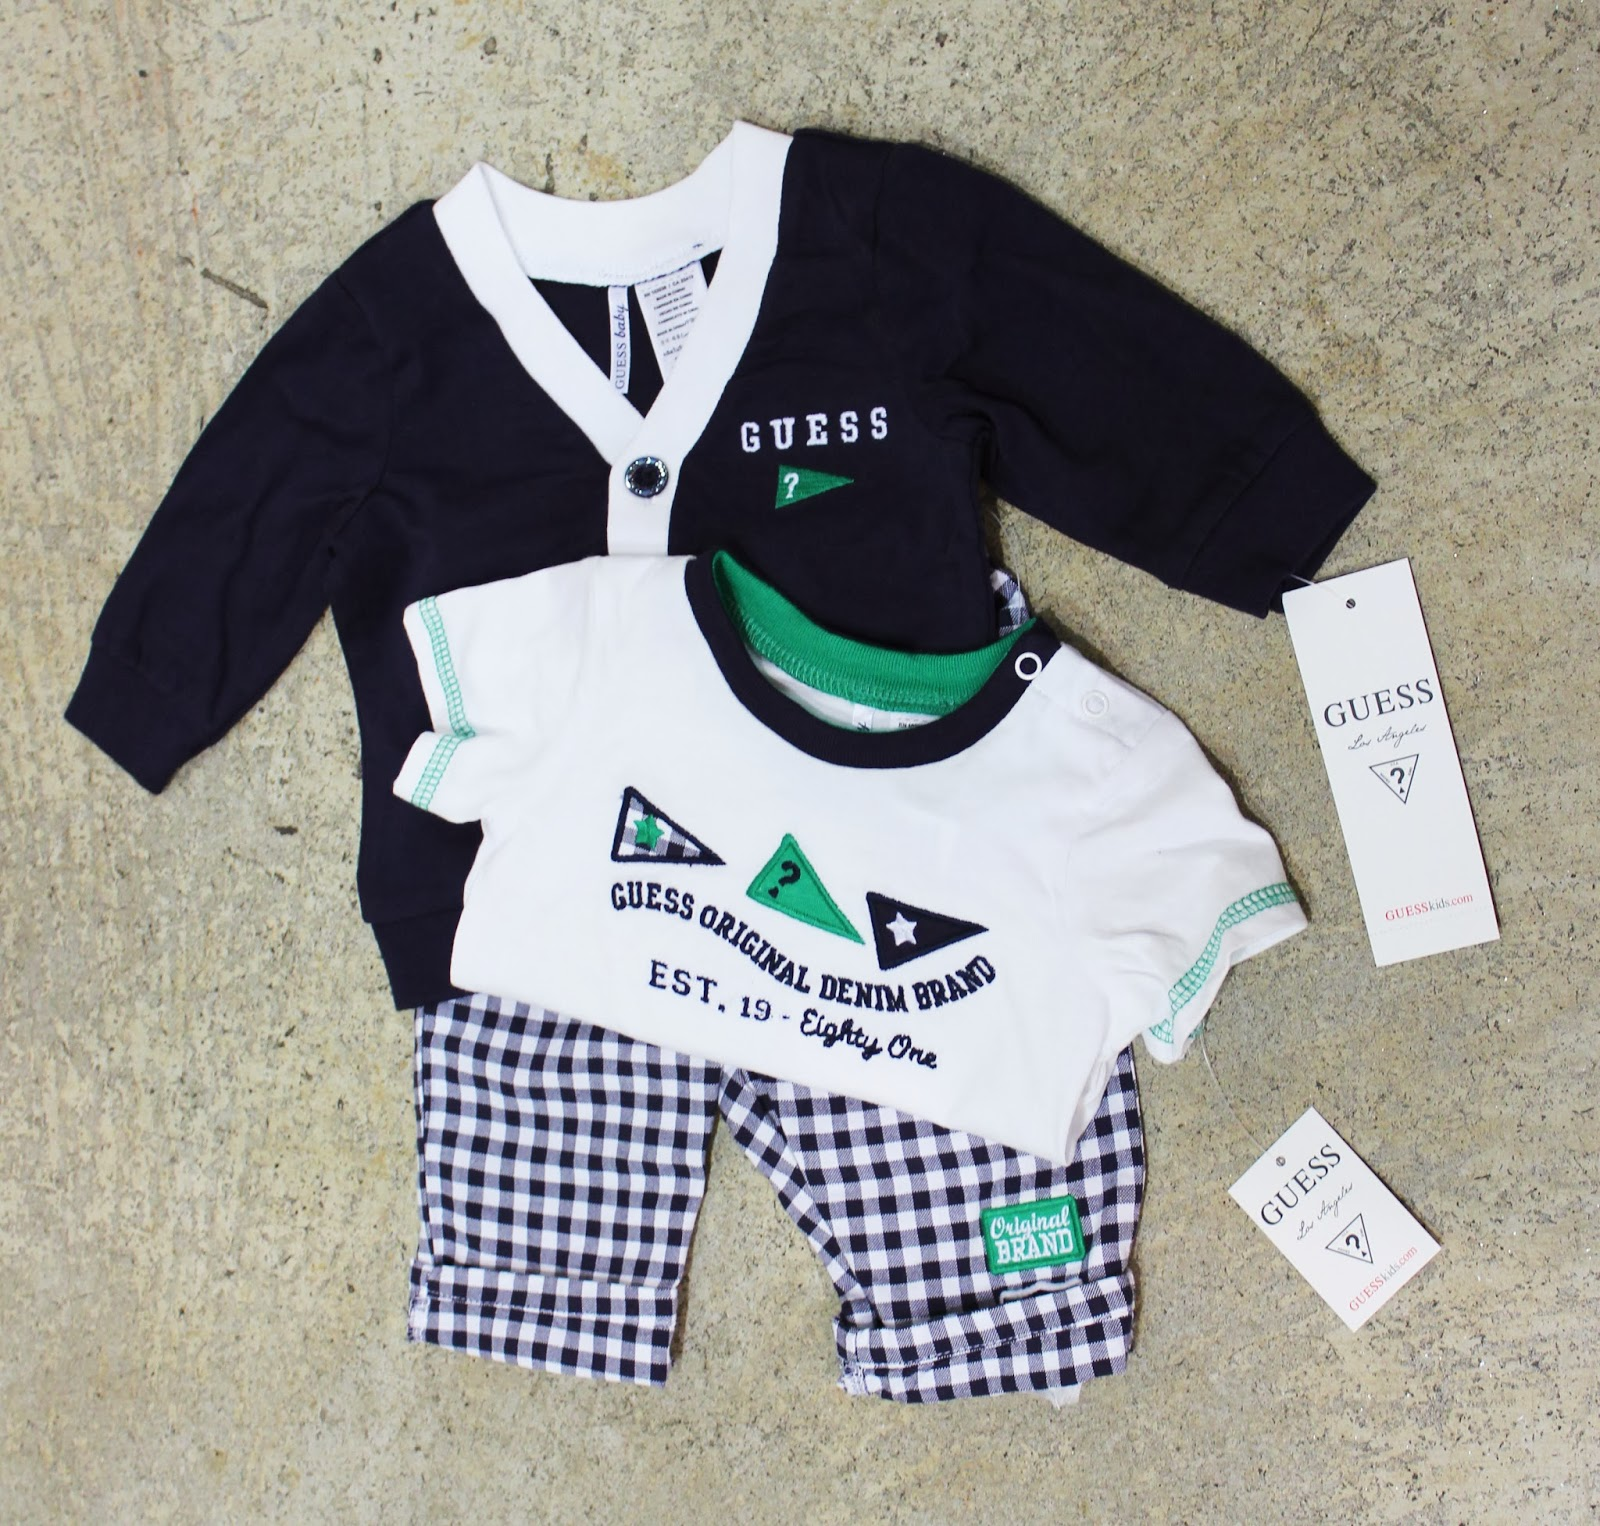 Baby Gifts Adelaide Australia : South australian style last minute christmas gift ideas